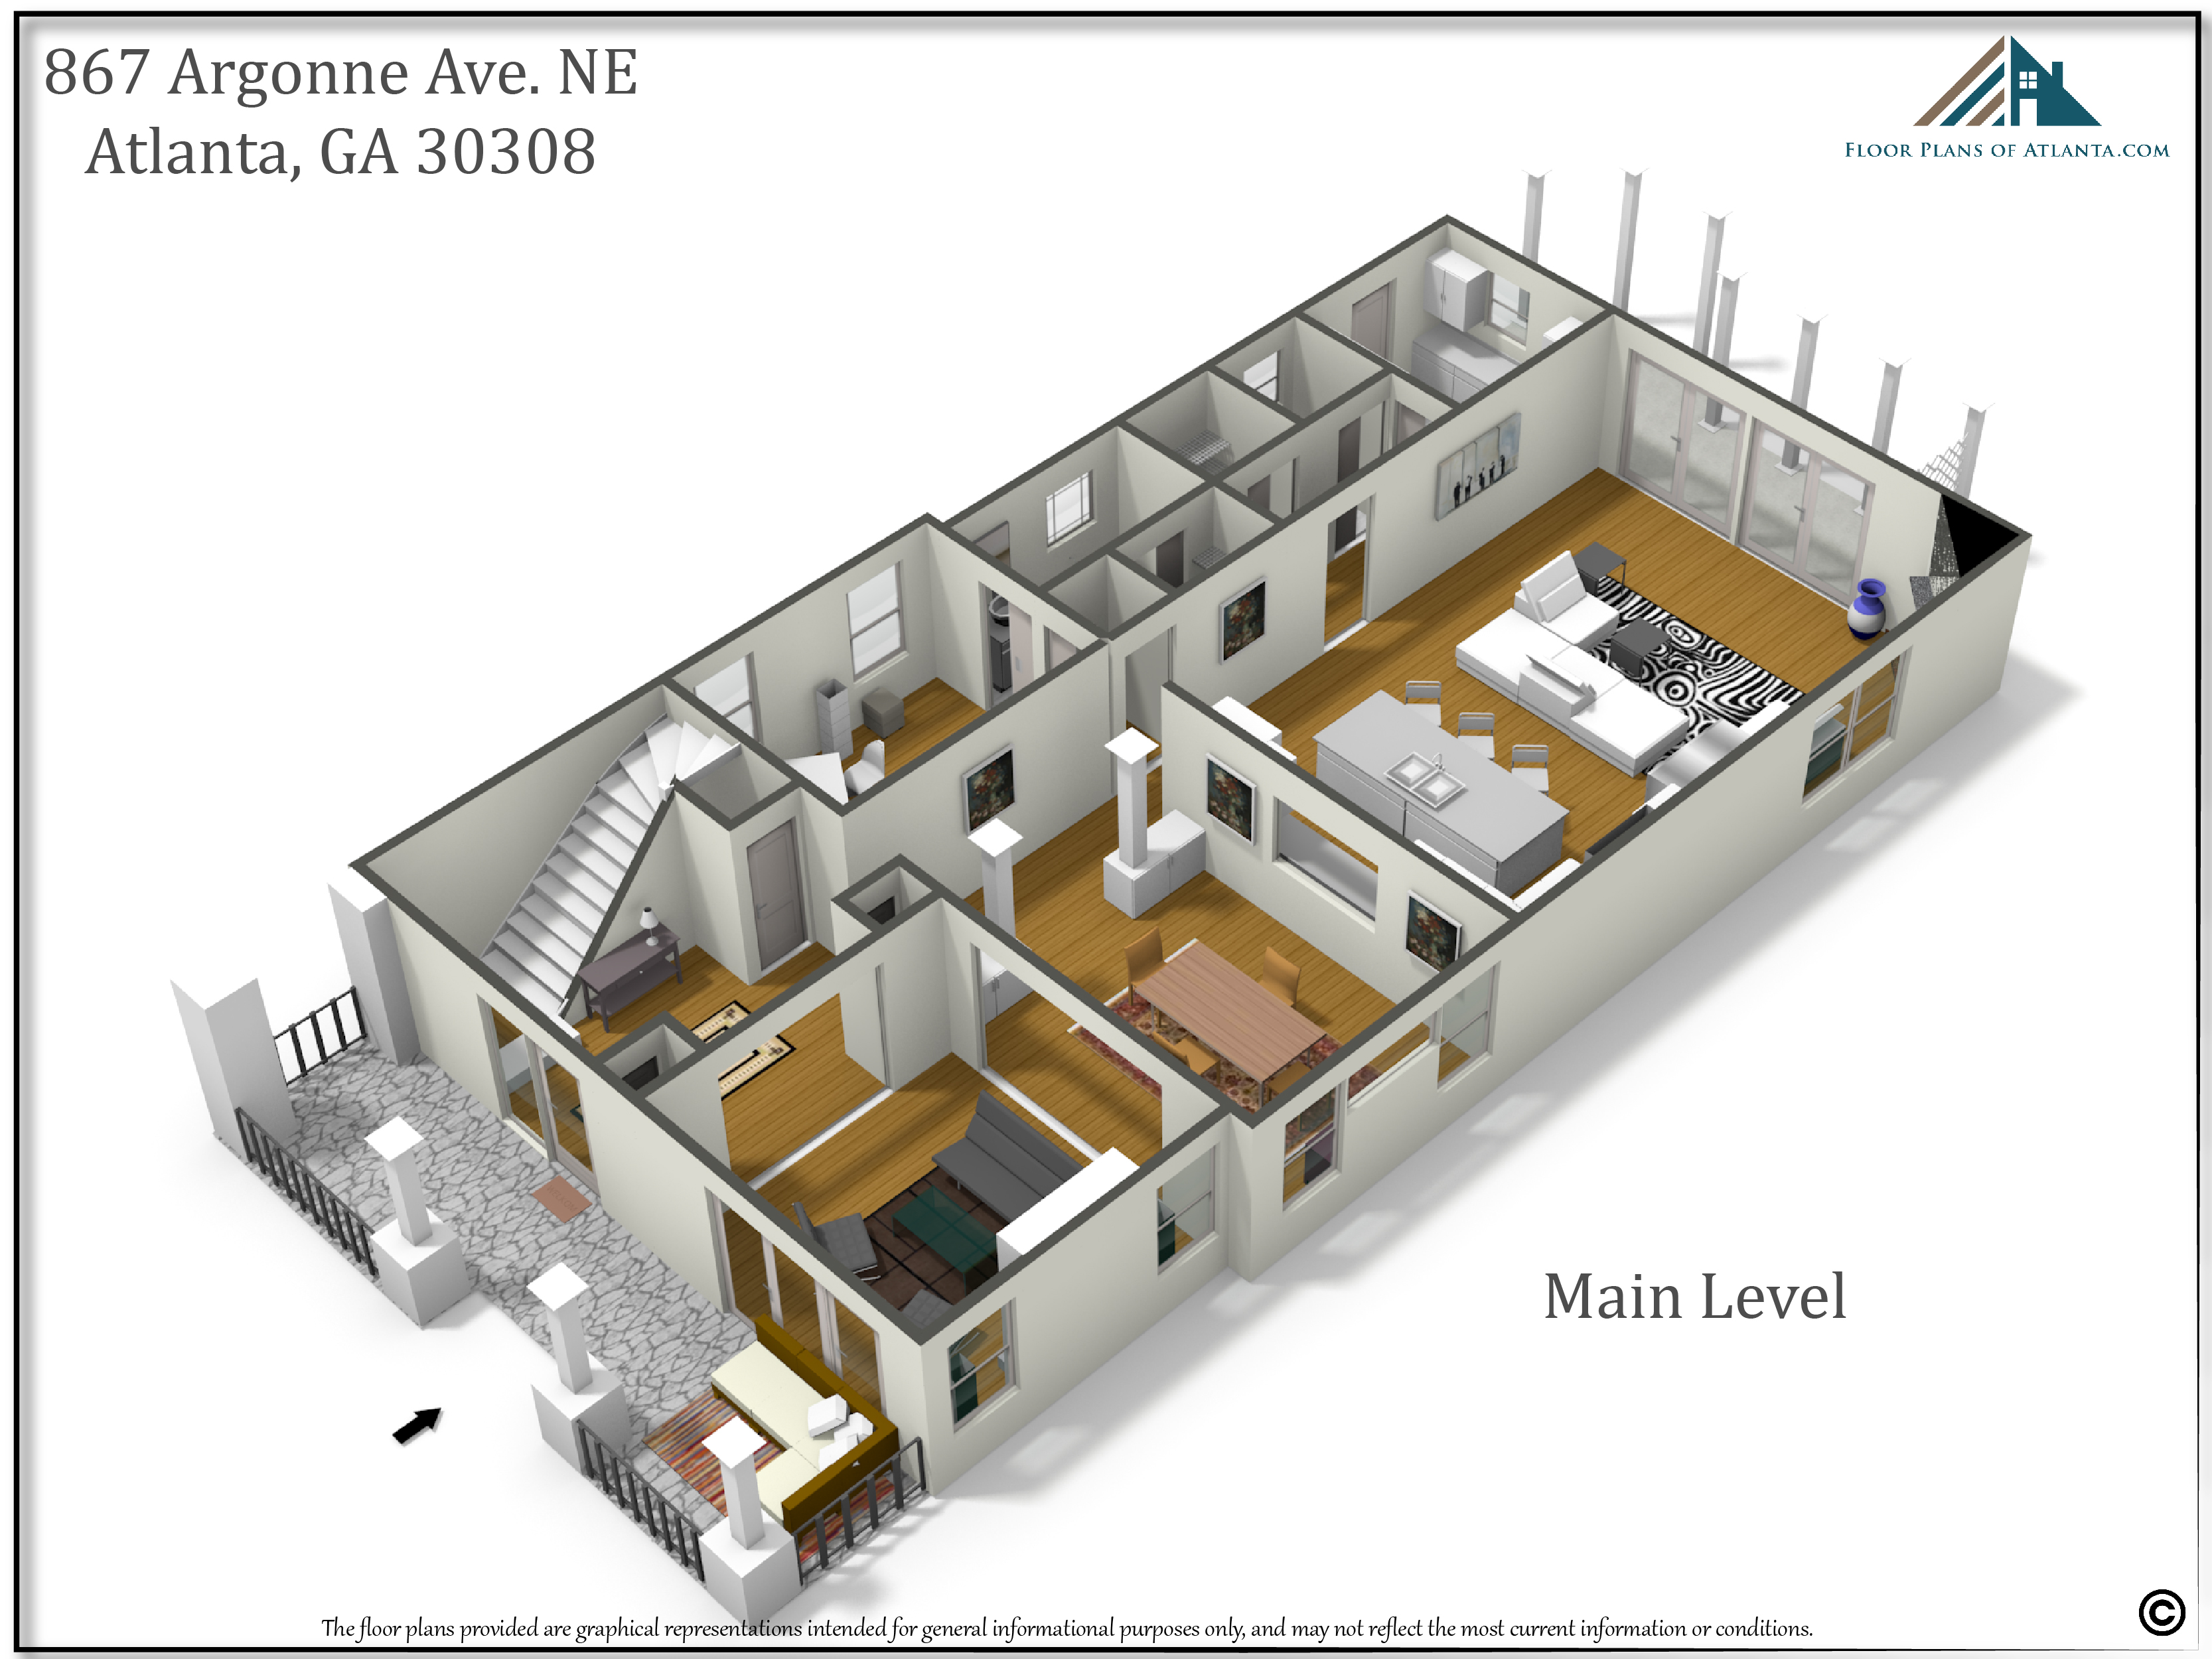 4 - Main level perspective #1